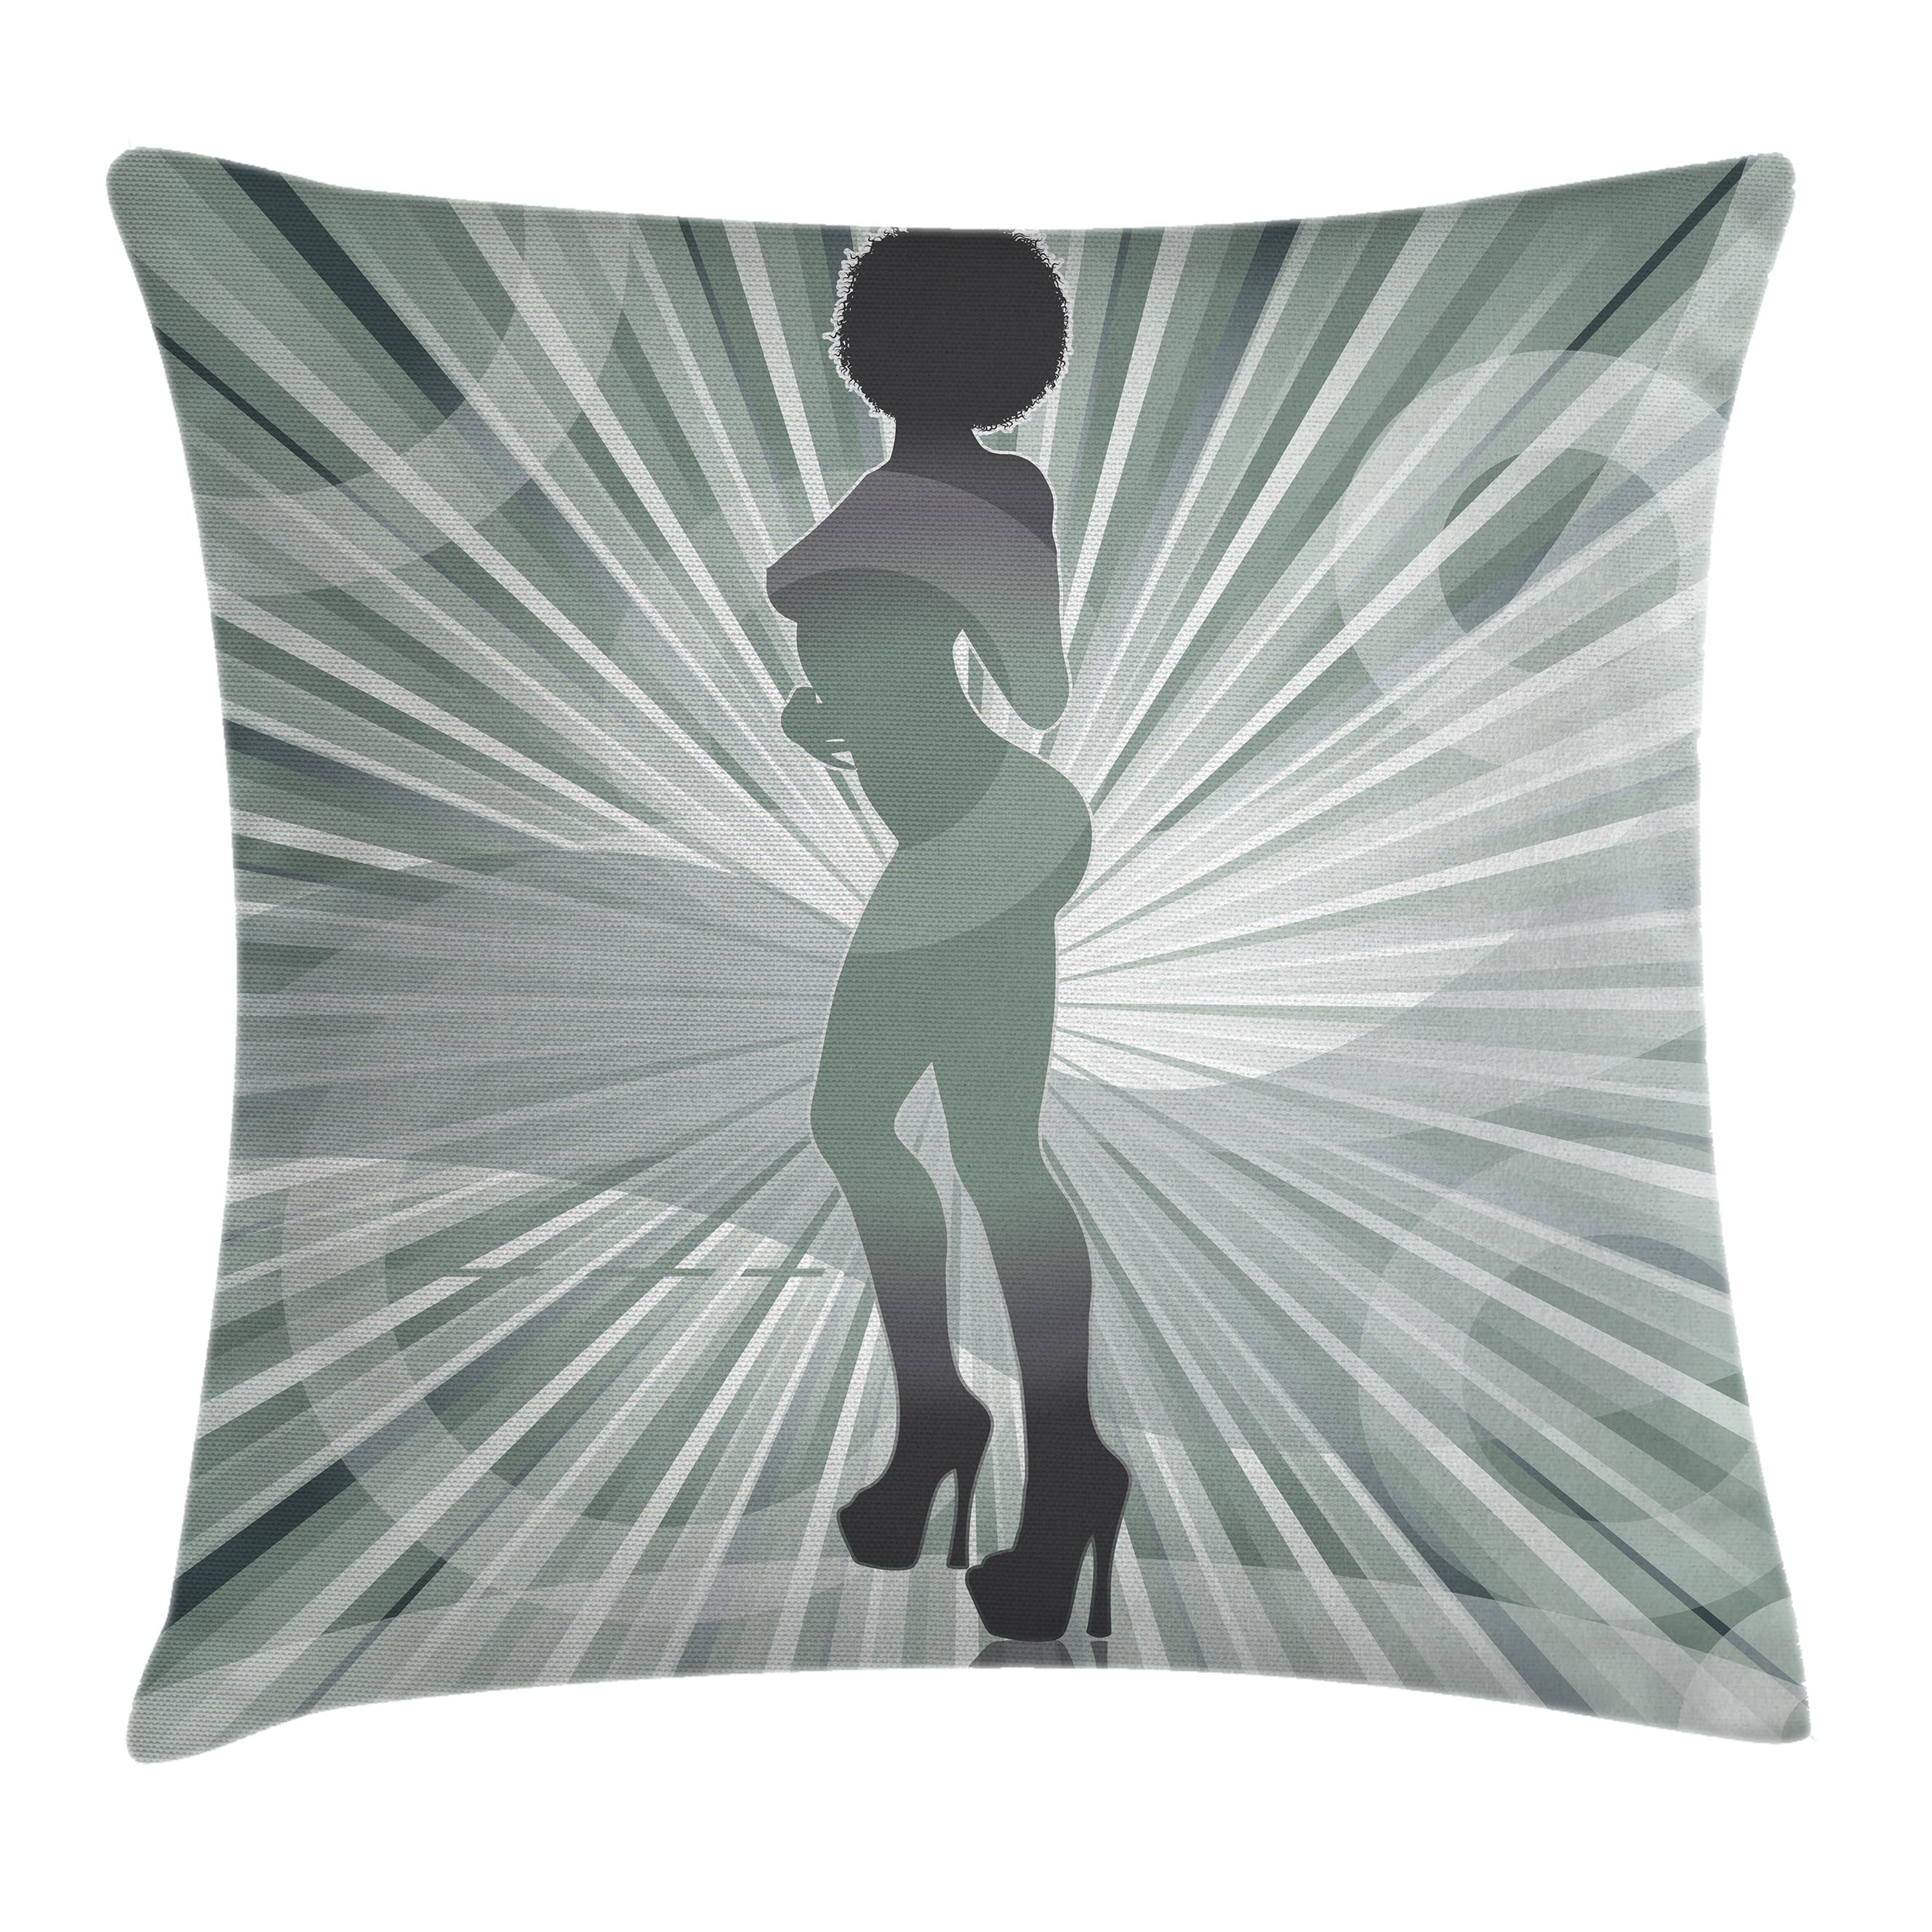 Apartment Decor Throw Pillow Cushion Cover, An Afro American Woman in High Heels Silhouette with Ray Background Pattern, Decorative Square Accent Pillow Case, 18 X 18 Inches, Black, by Ambesonne